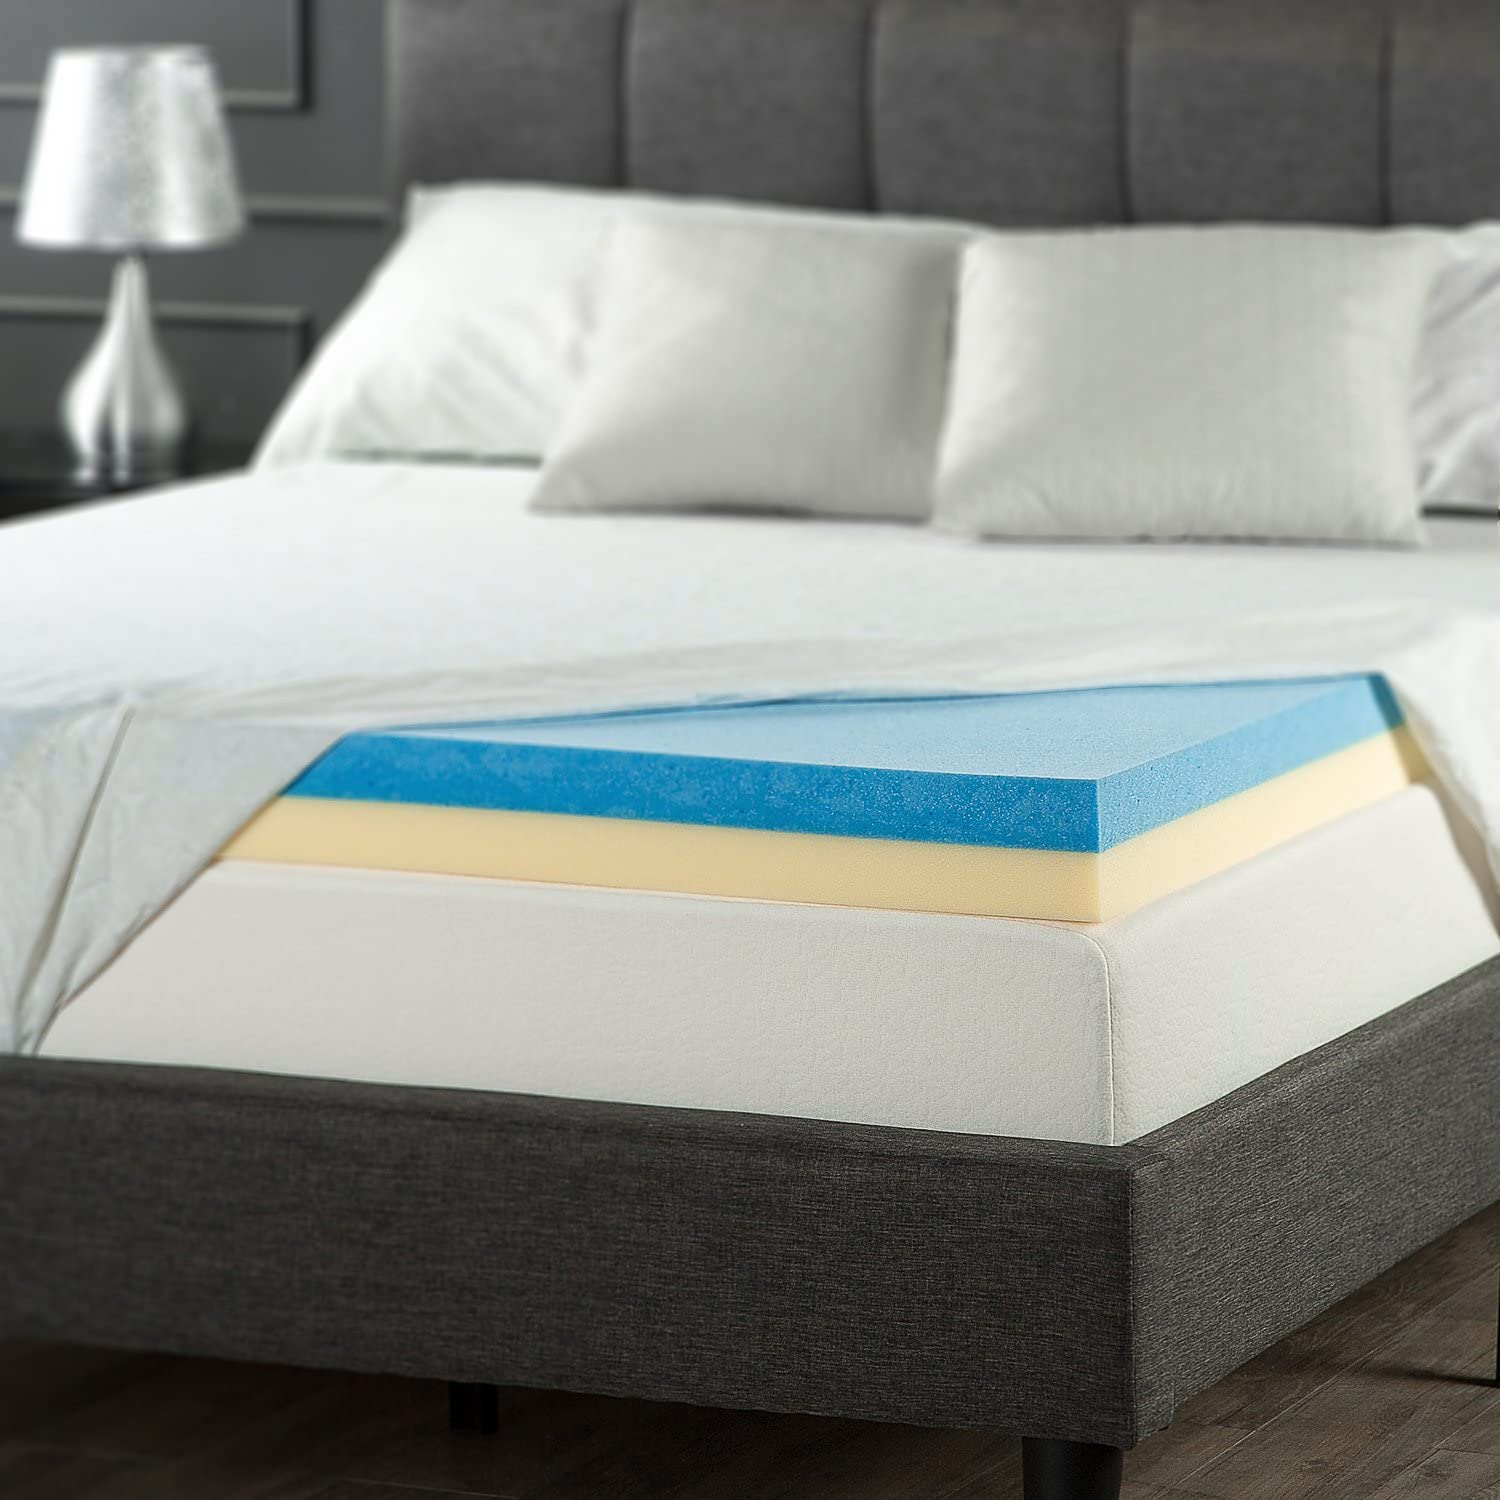 Zinus 4 Inch Gel Memory Foam Mattress Topper, Full